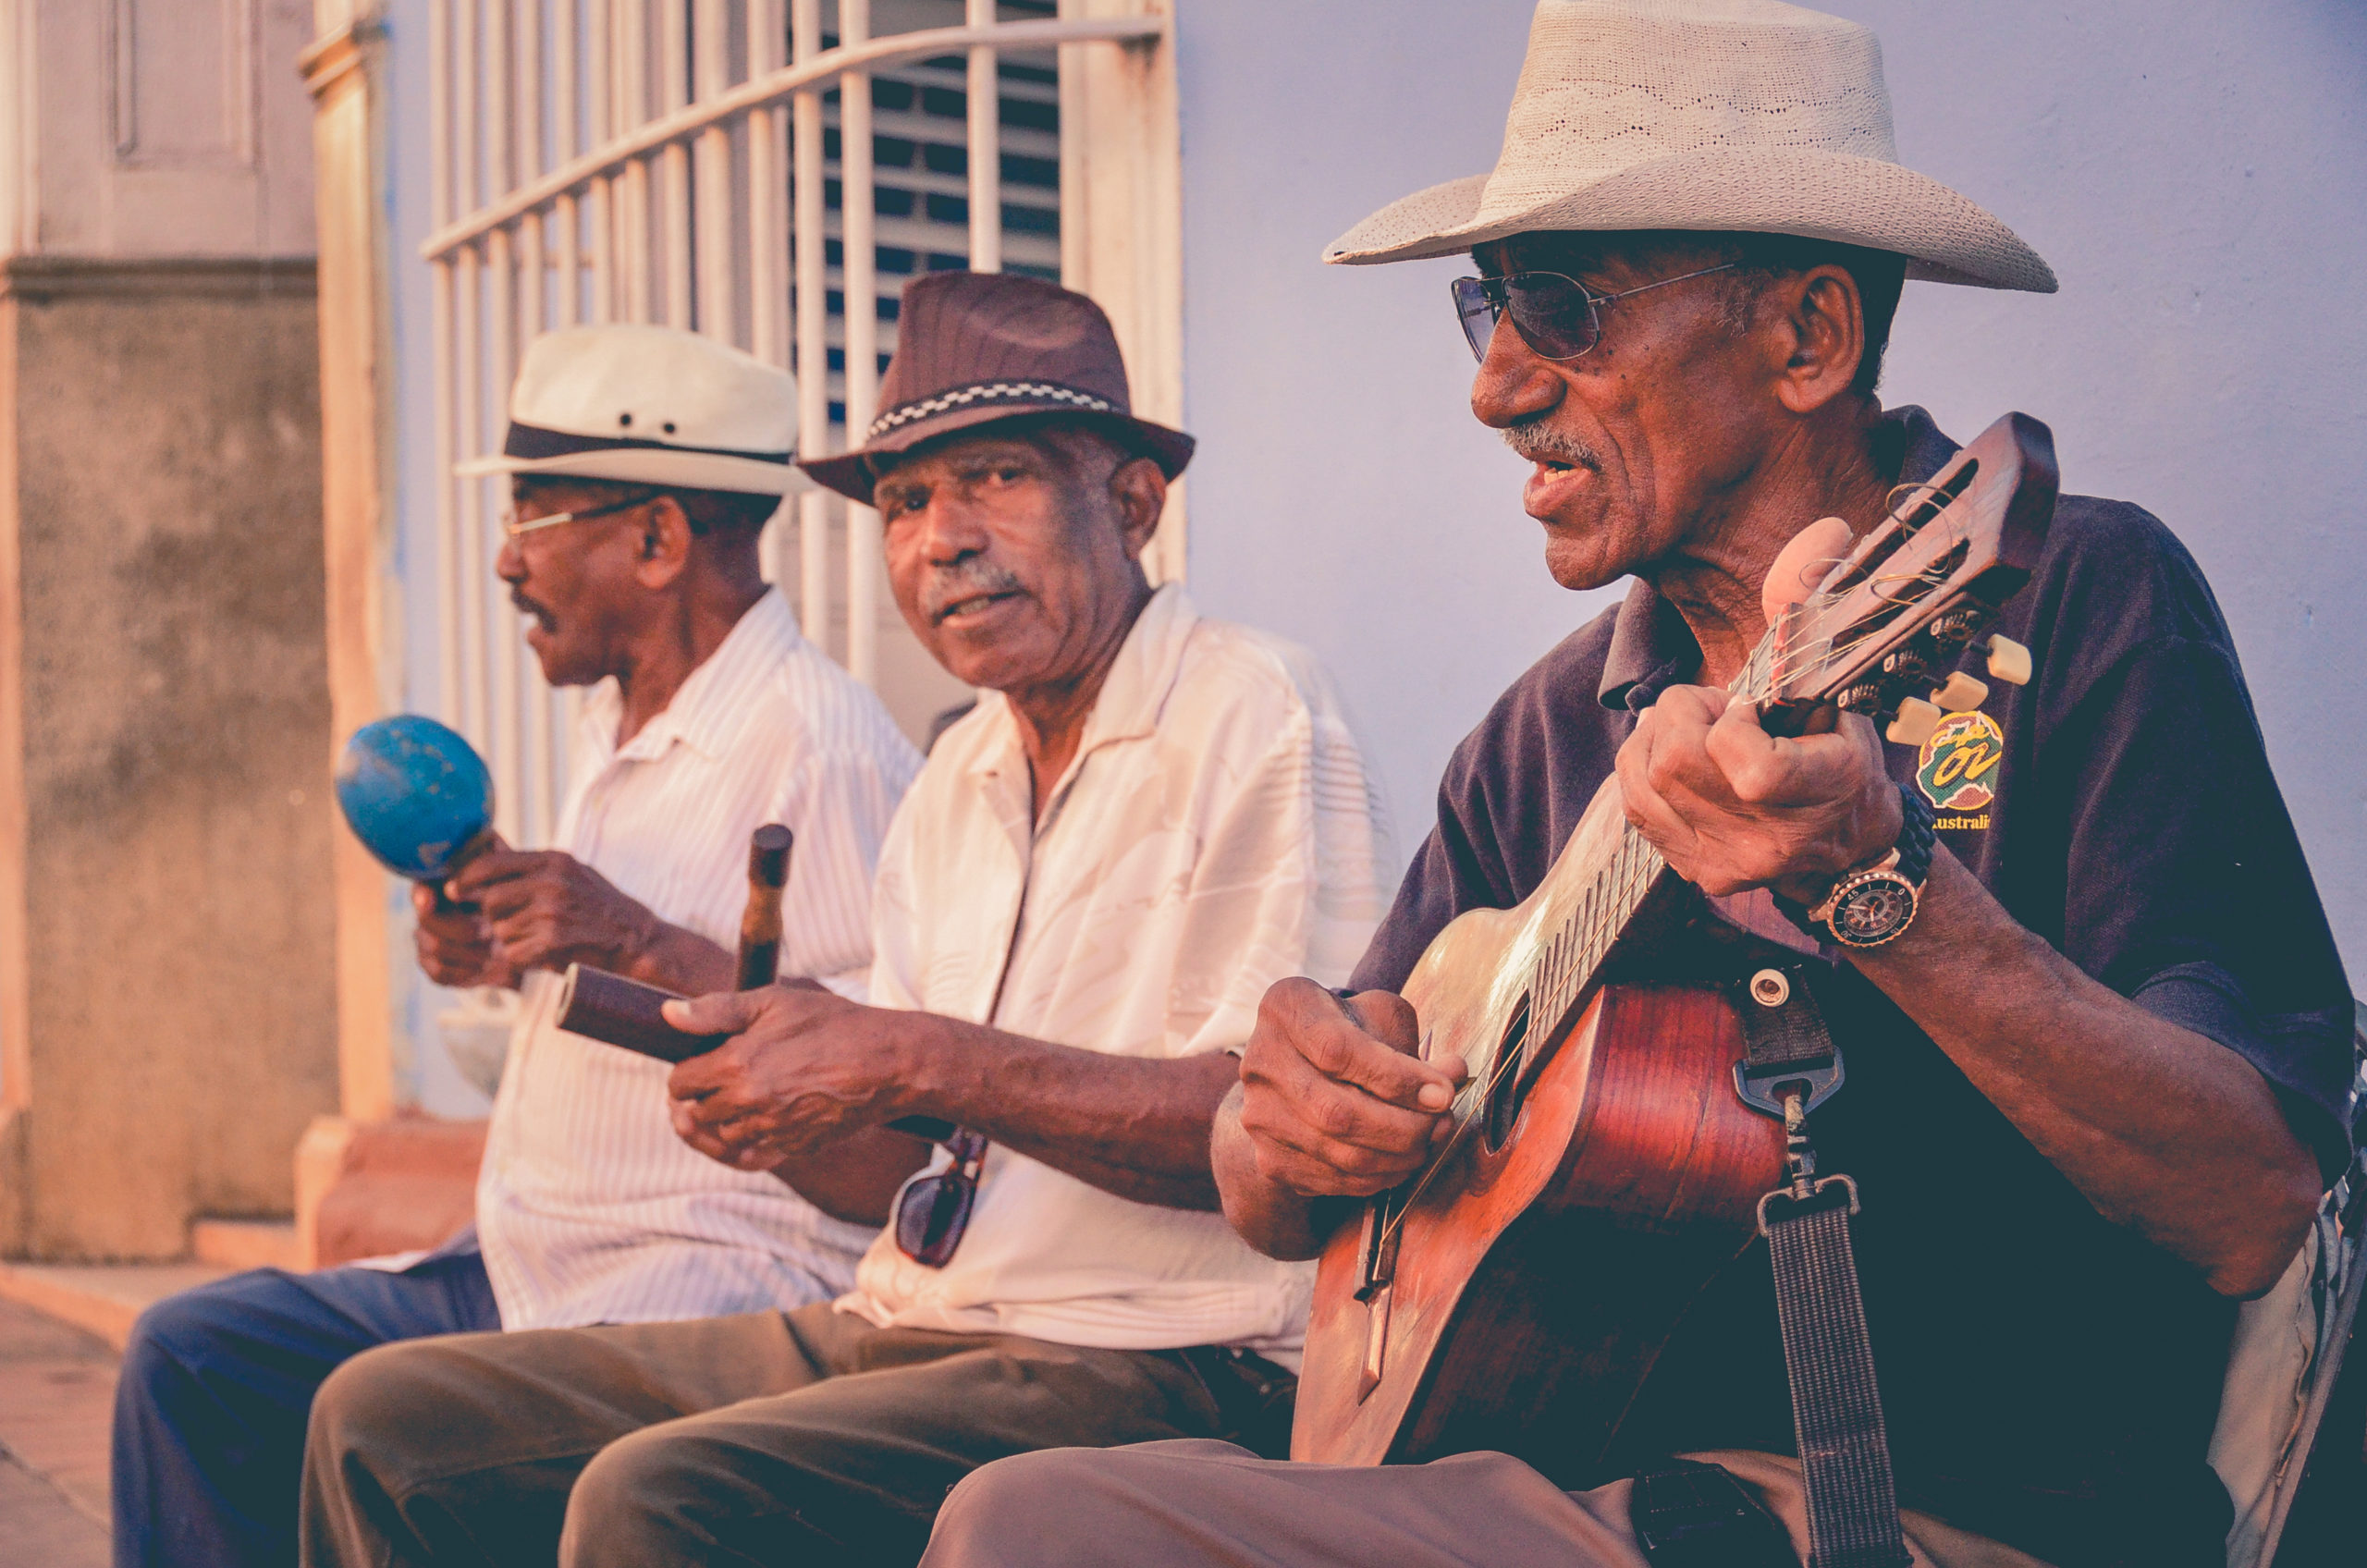 Canva — Three Men Playing Musical Instruments